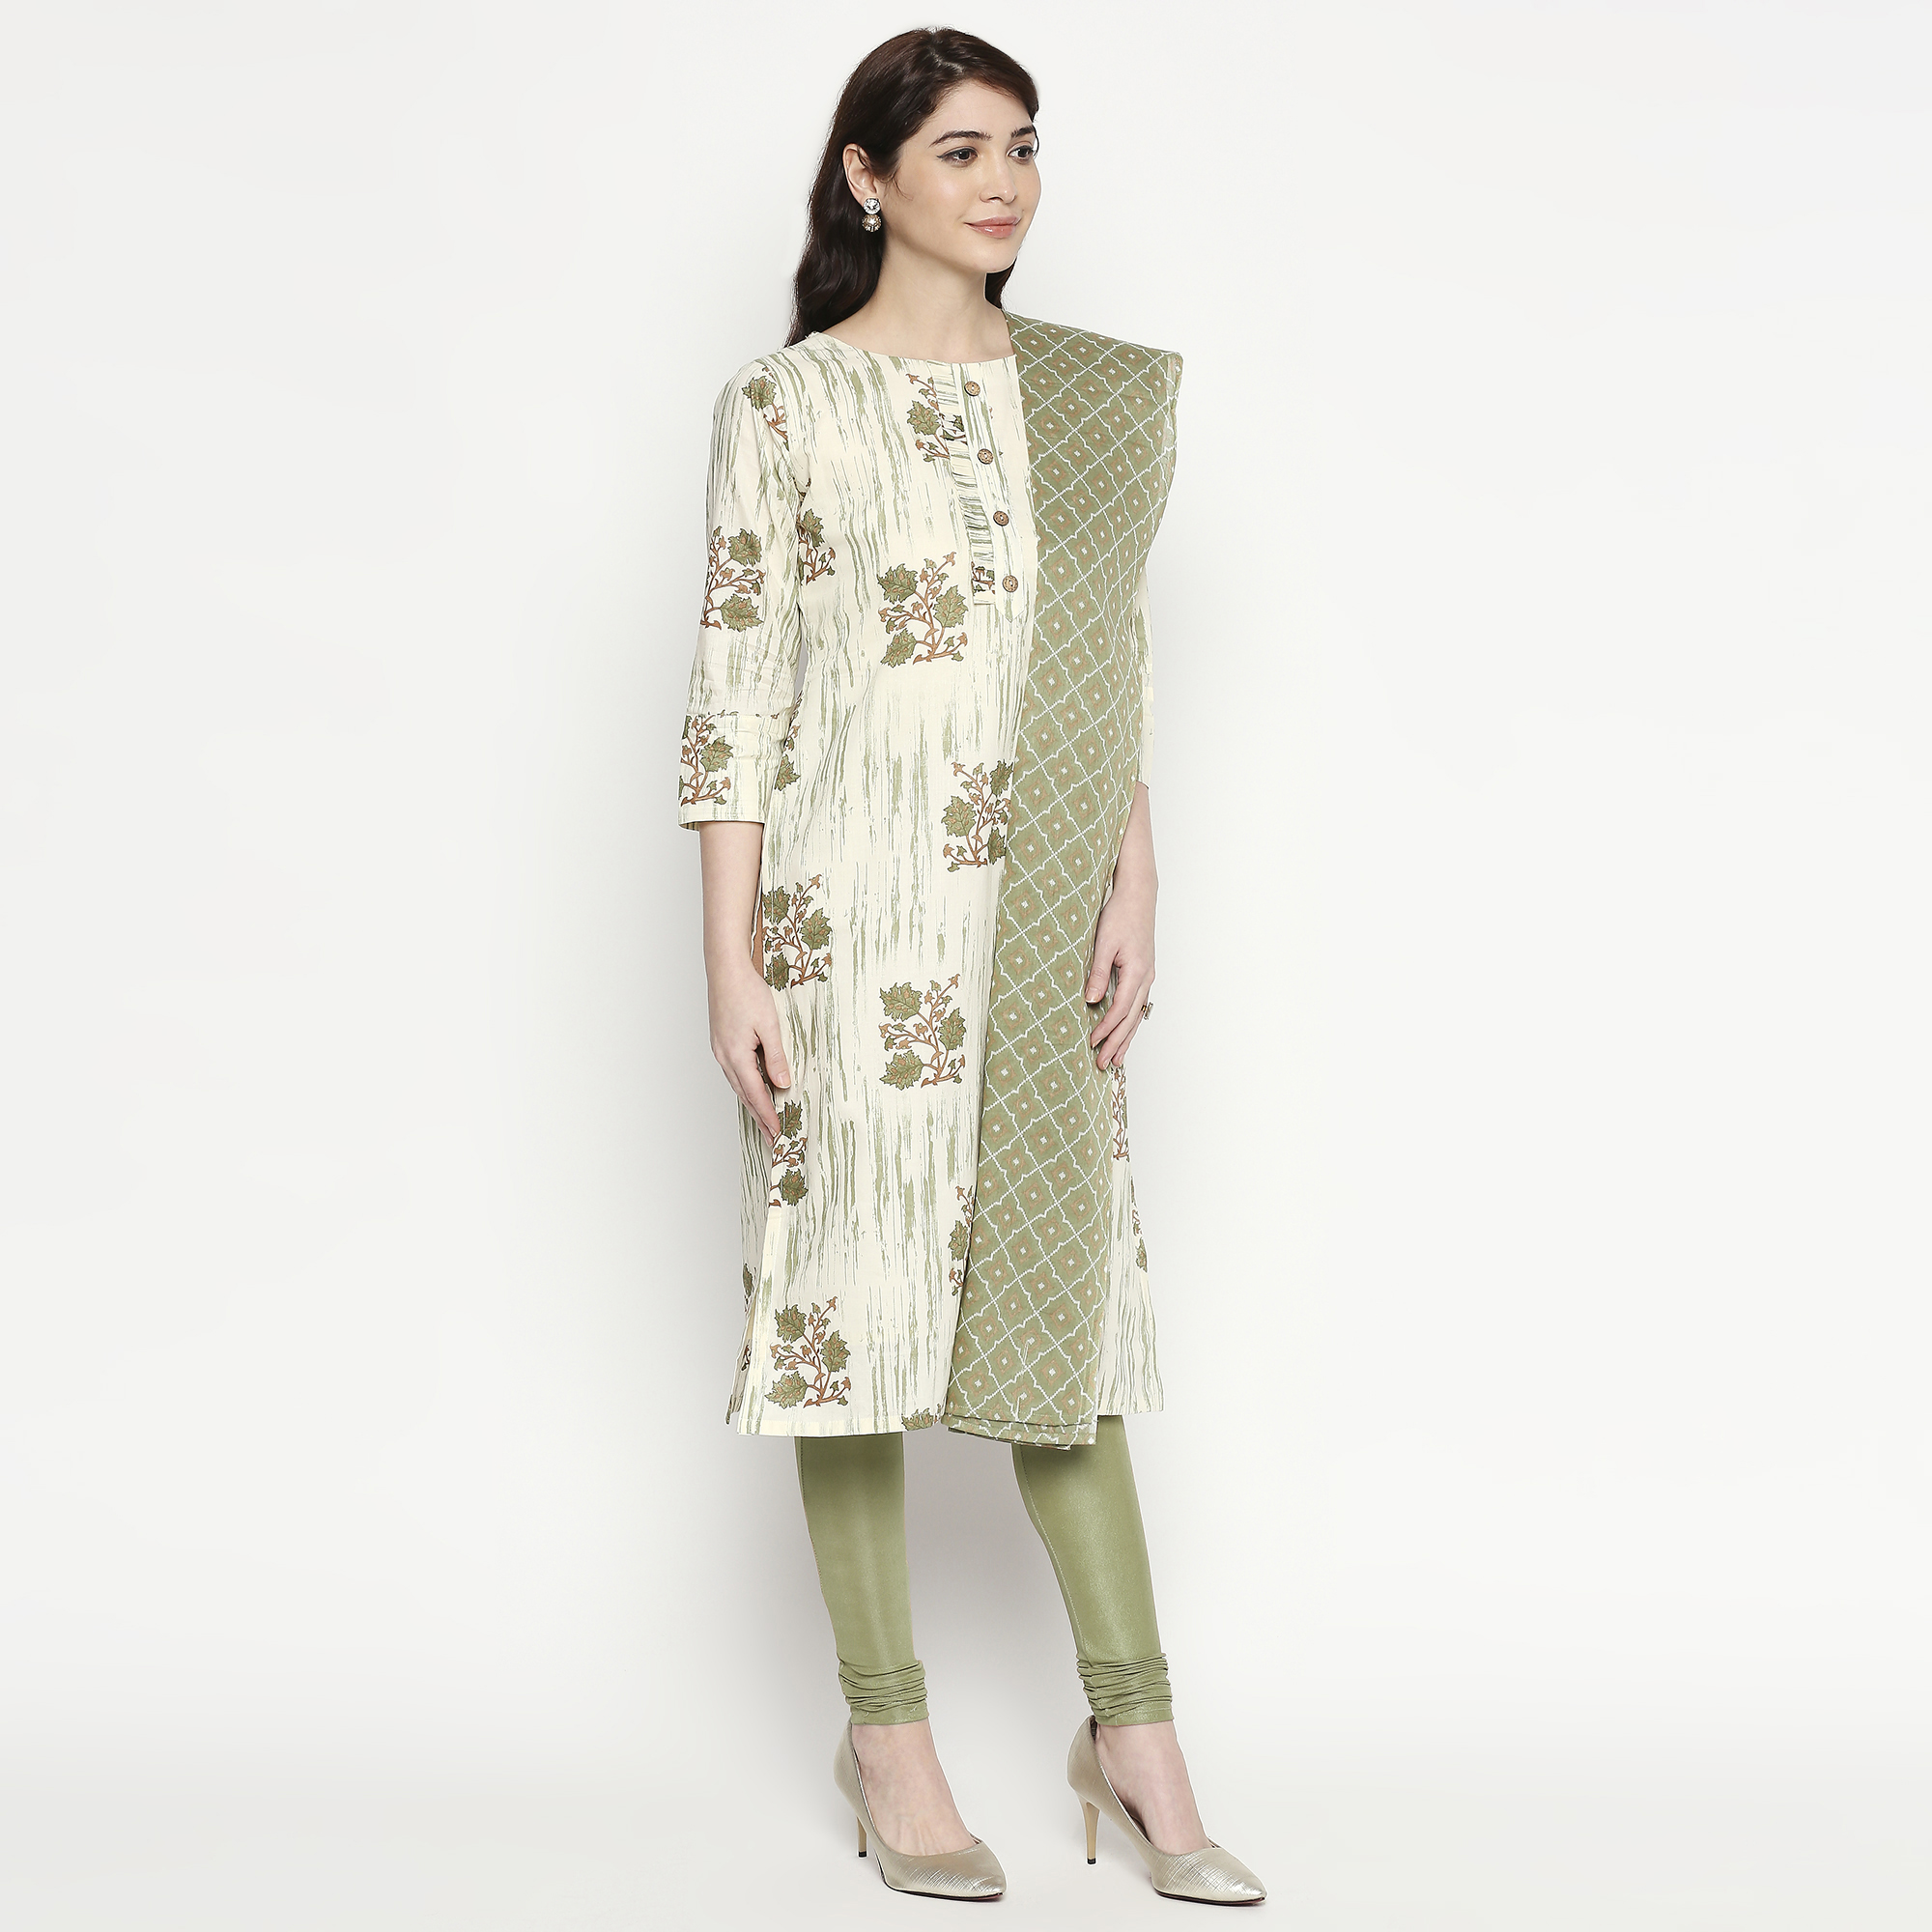 Attractive White-Green Colored Casual Wear Floral Printed Cotton Kurti With Dupatta